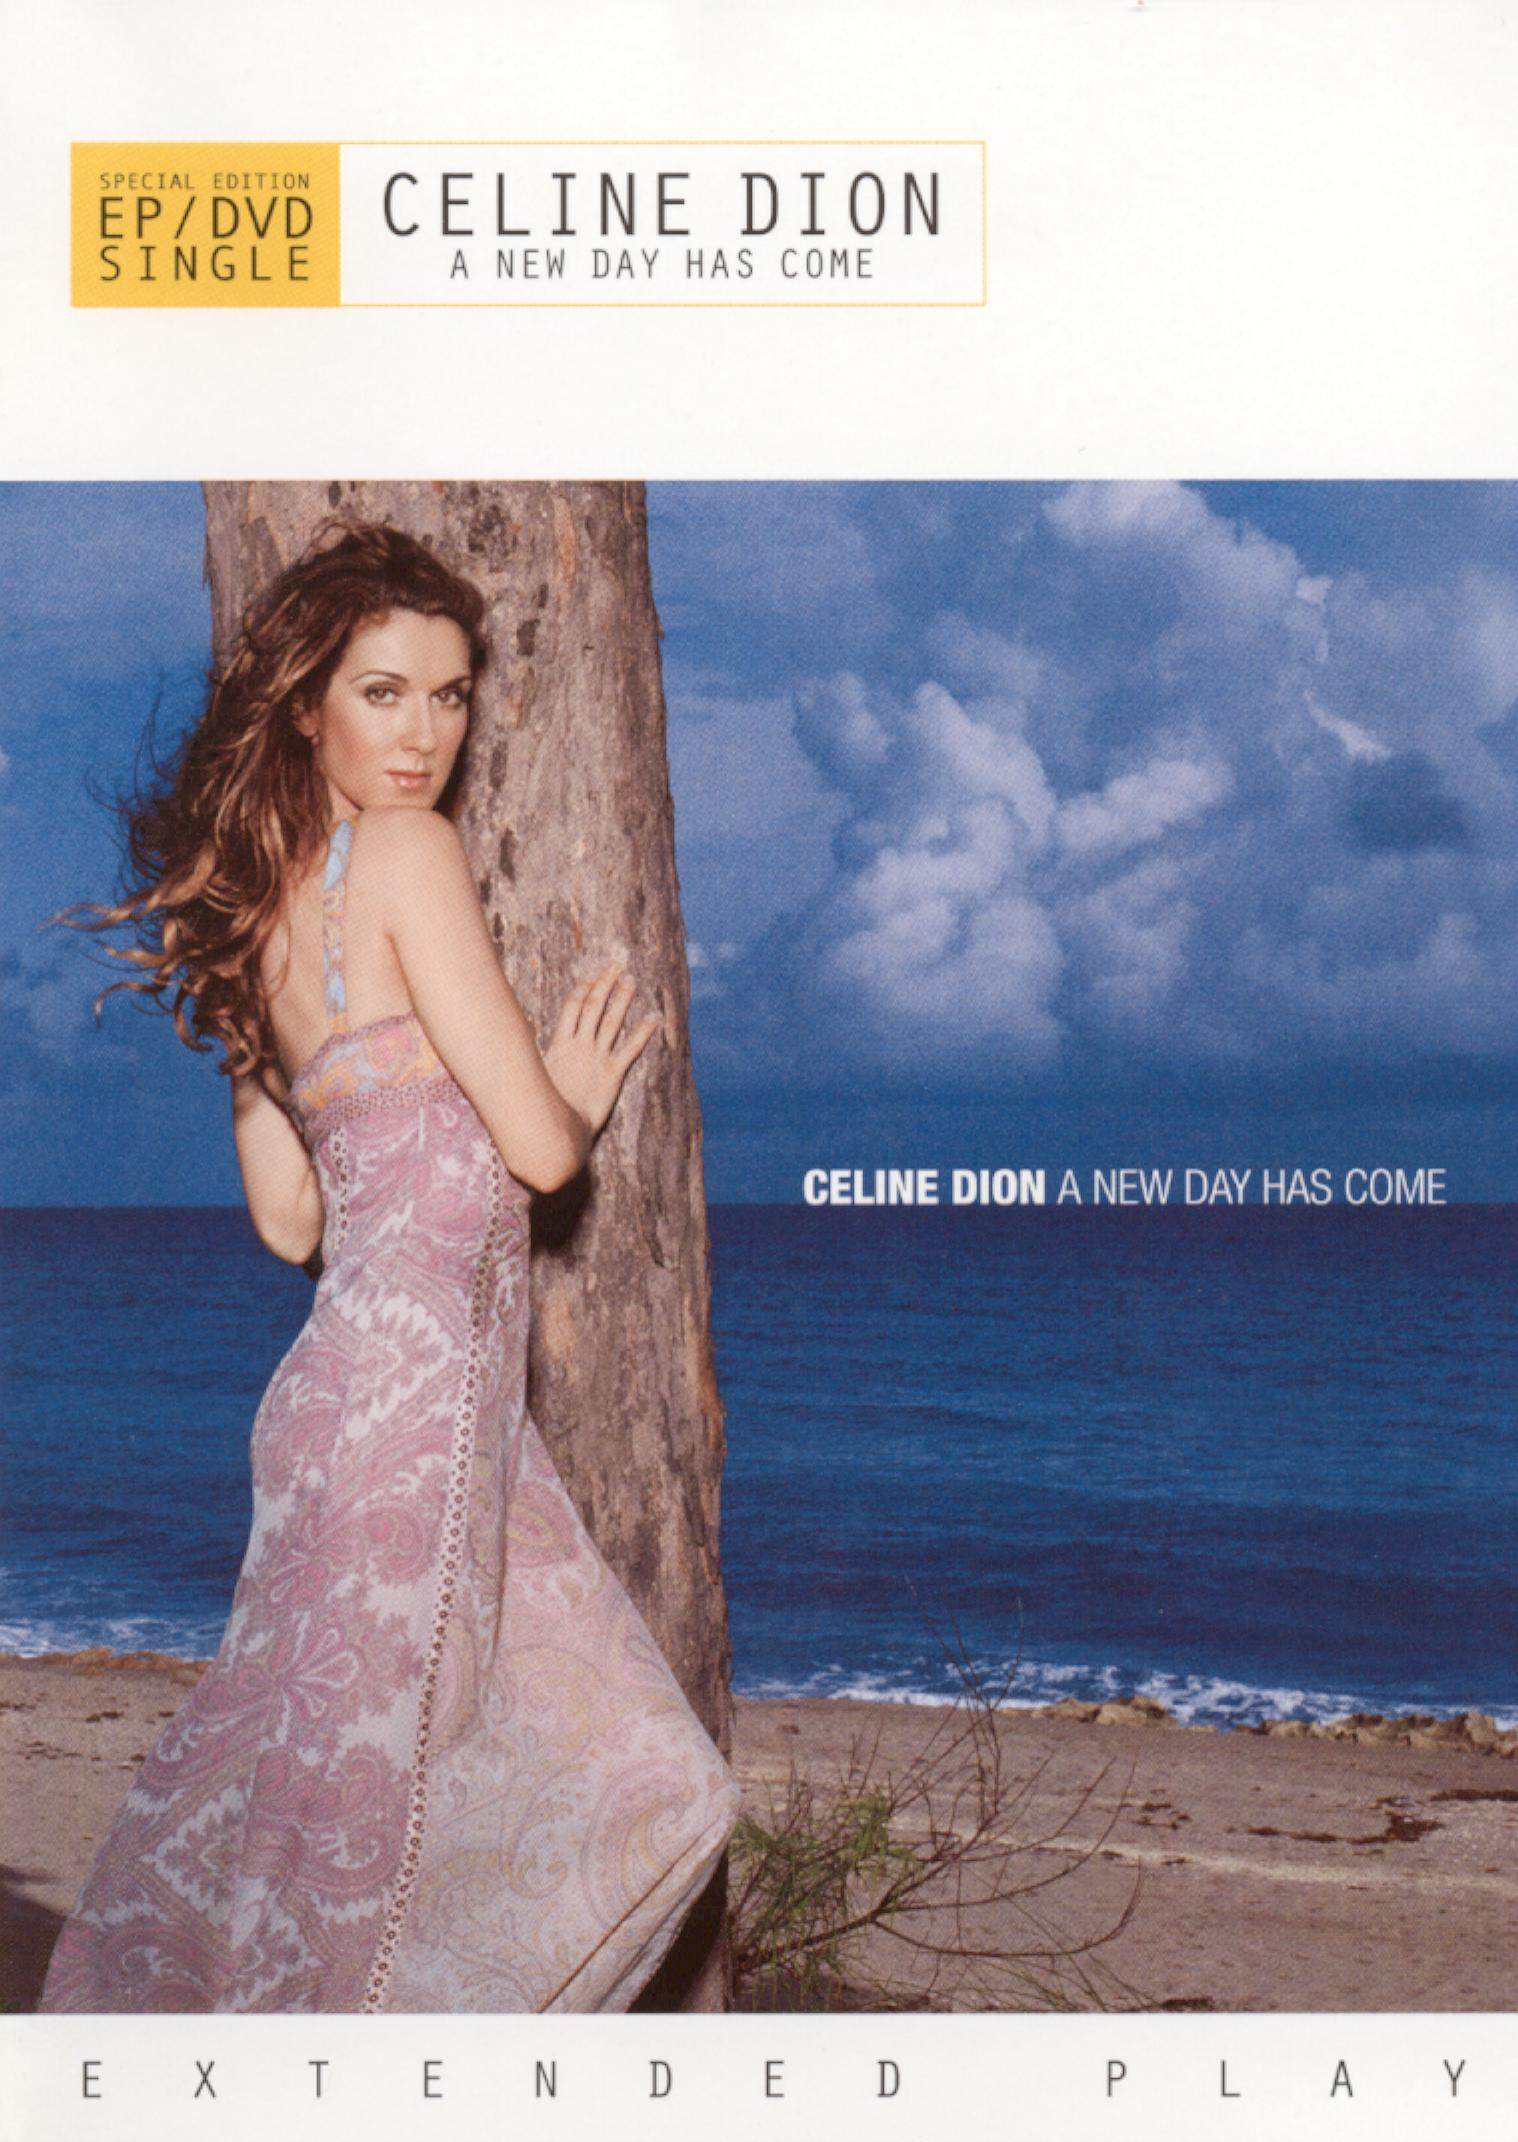 Celine Dion: A New Day Has Come  [DVD Single]